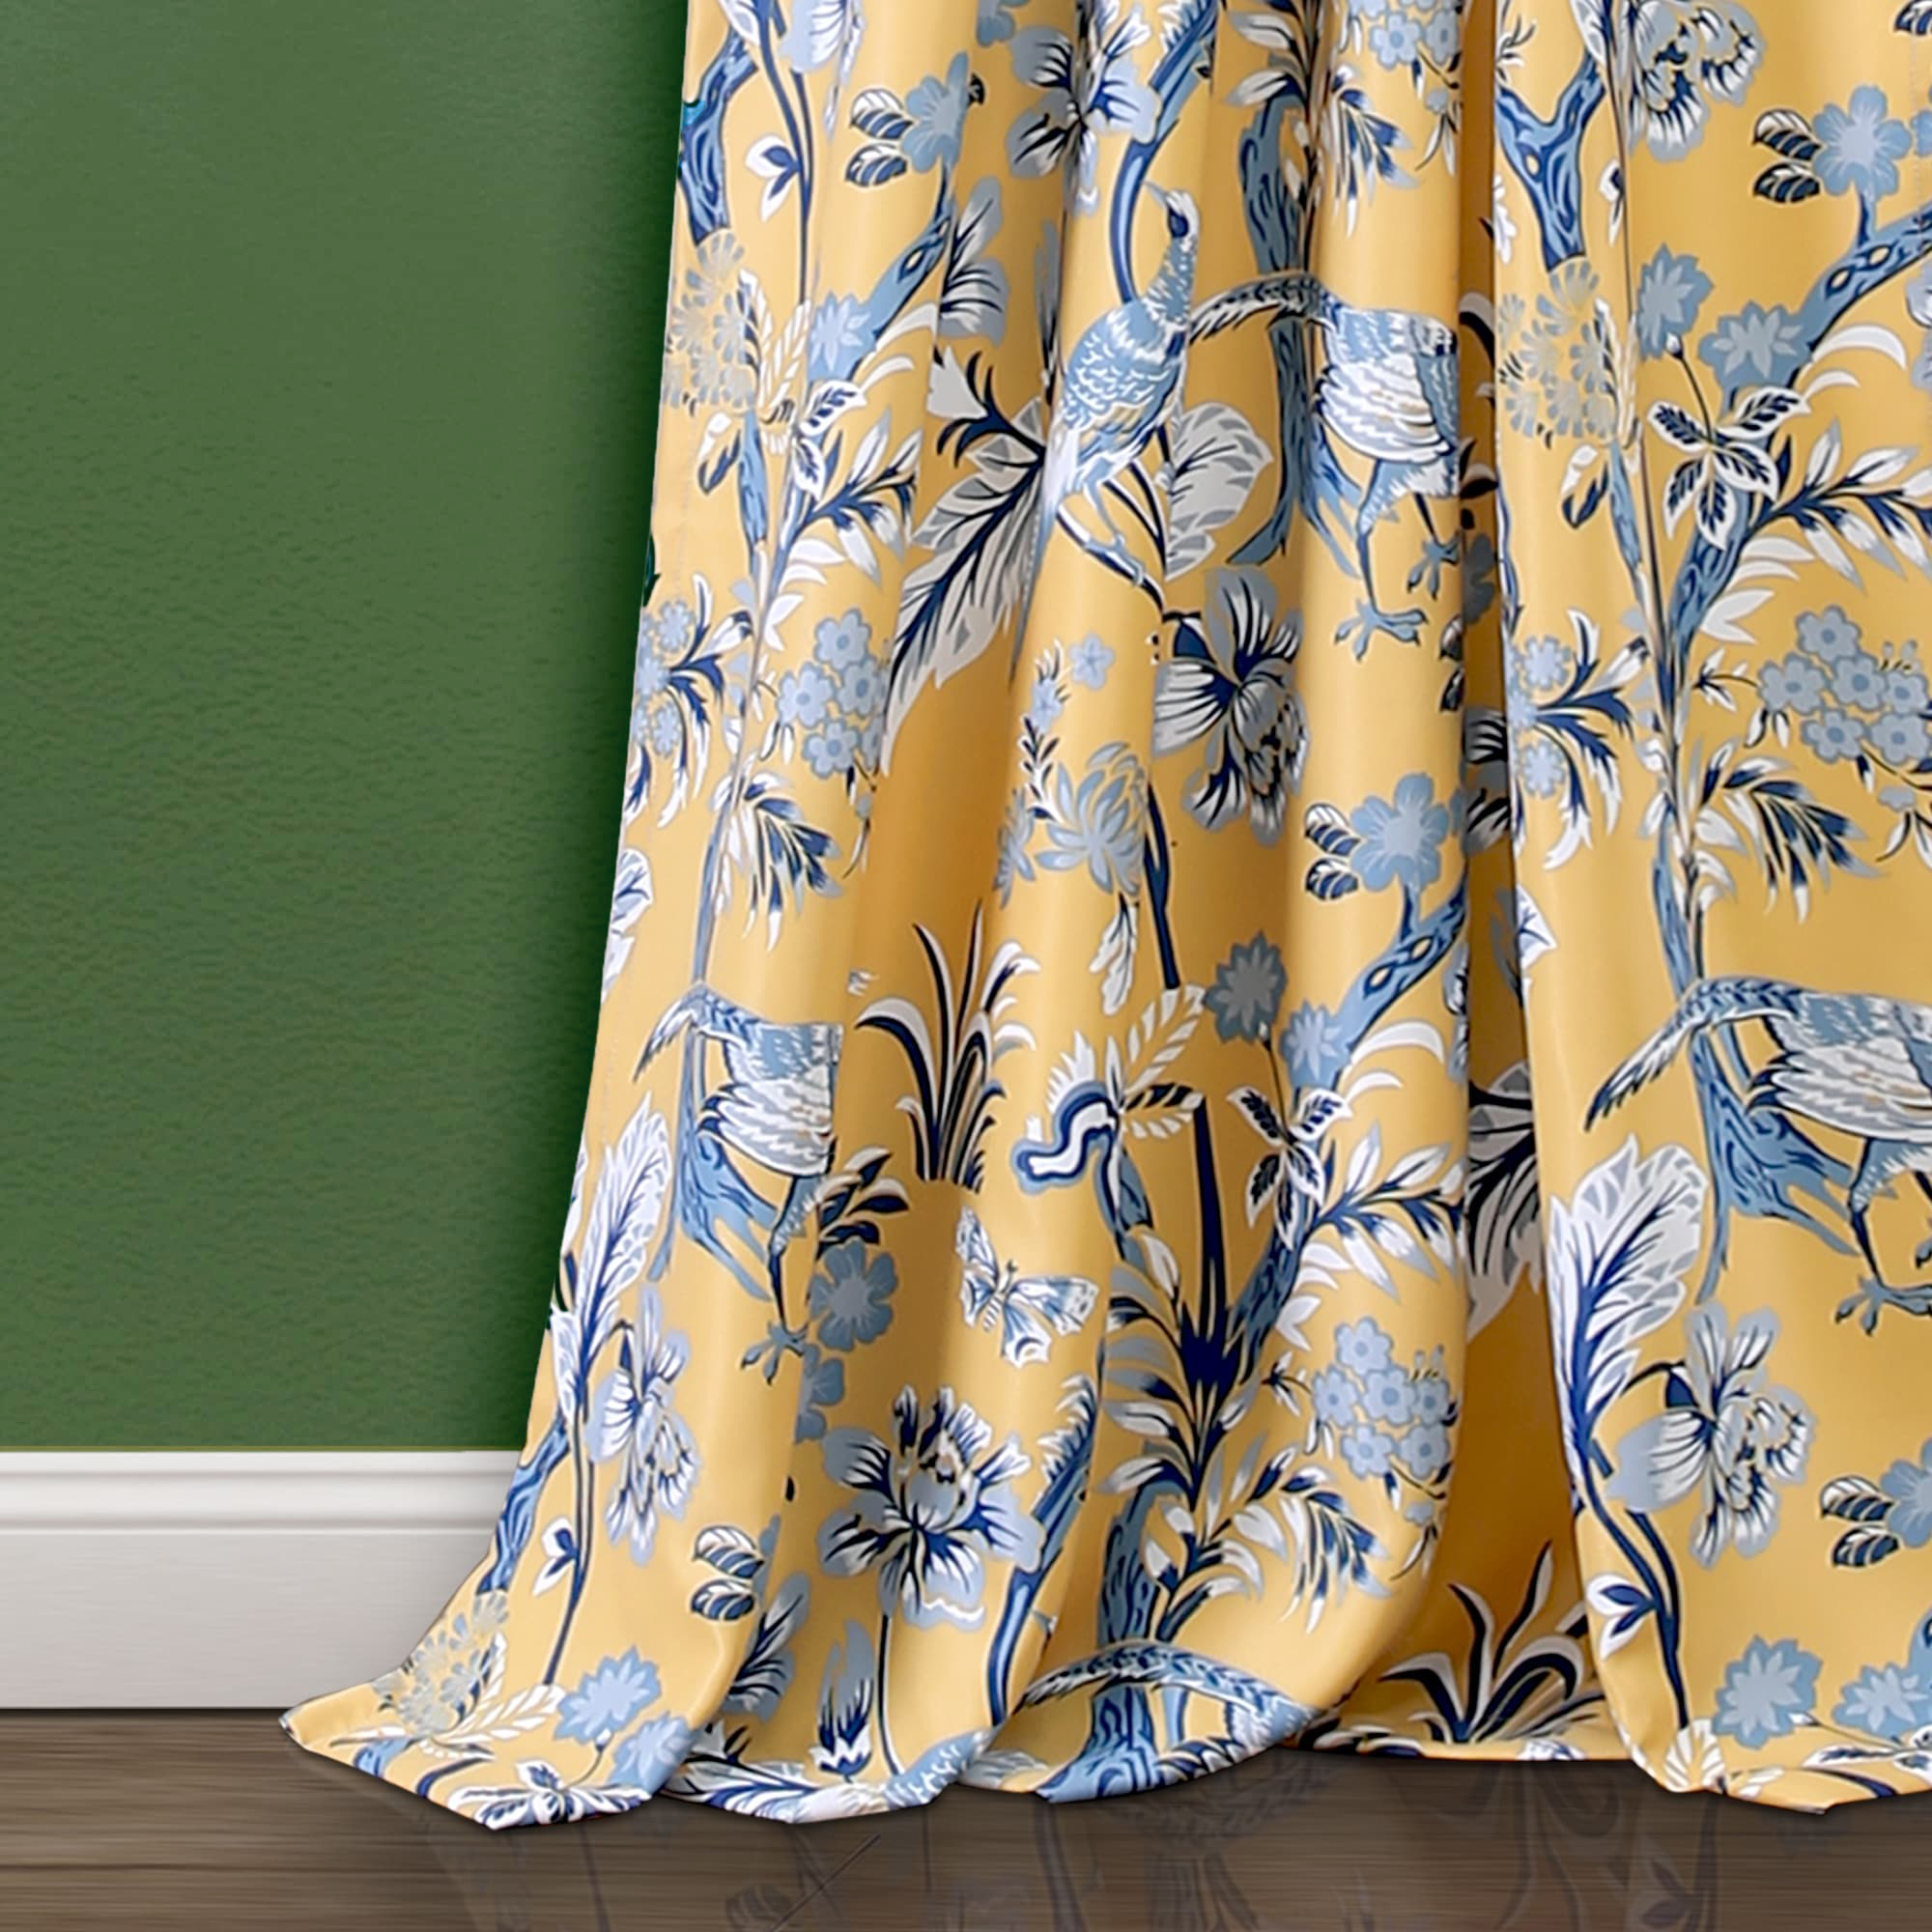 These Floral Curtains Light Up the Entire Room